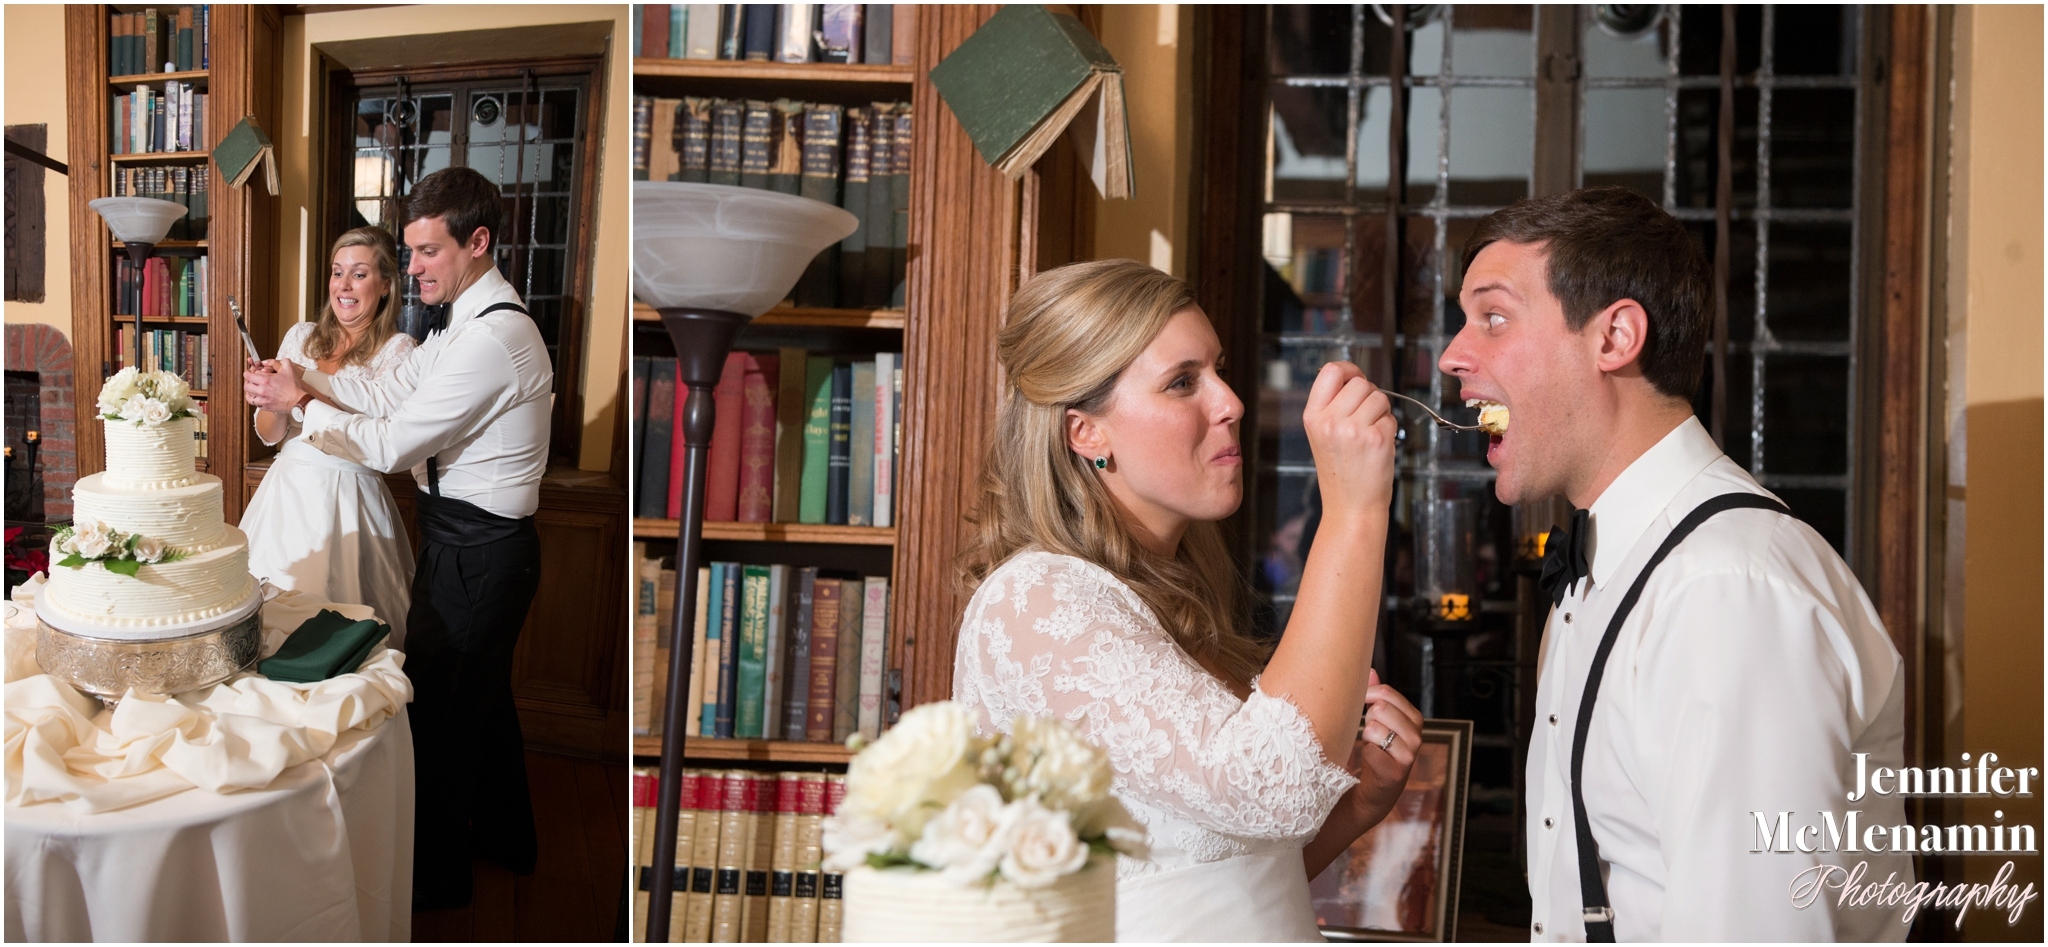 0109_RyanClemmens_03044-0810_JenniferMcMenaminPhotography_Immaculate-Conception-Church_The-Cloisters_Baltimore-wedding-photography_Baltimore-wedding-photographer